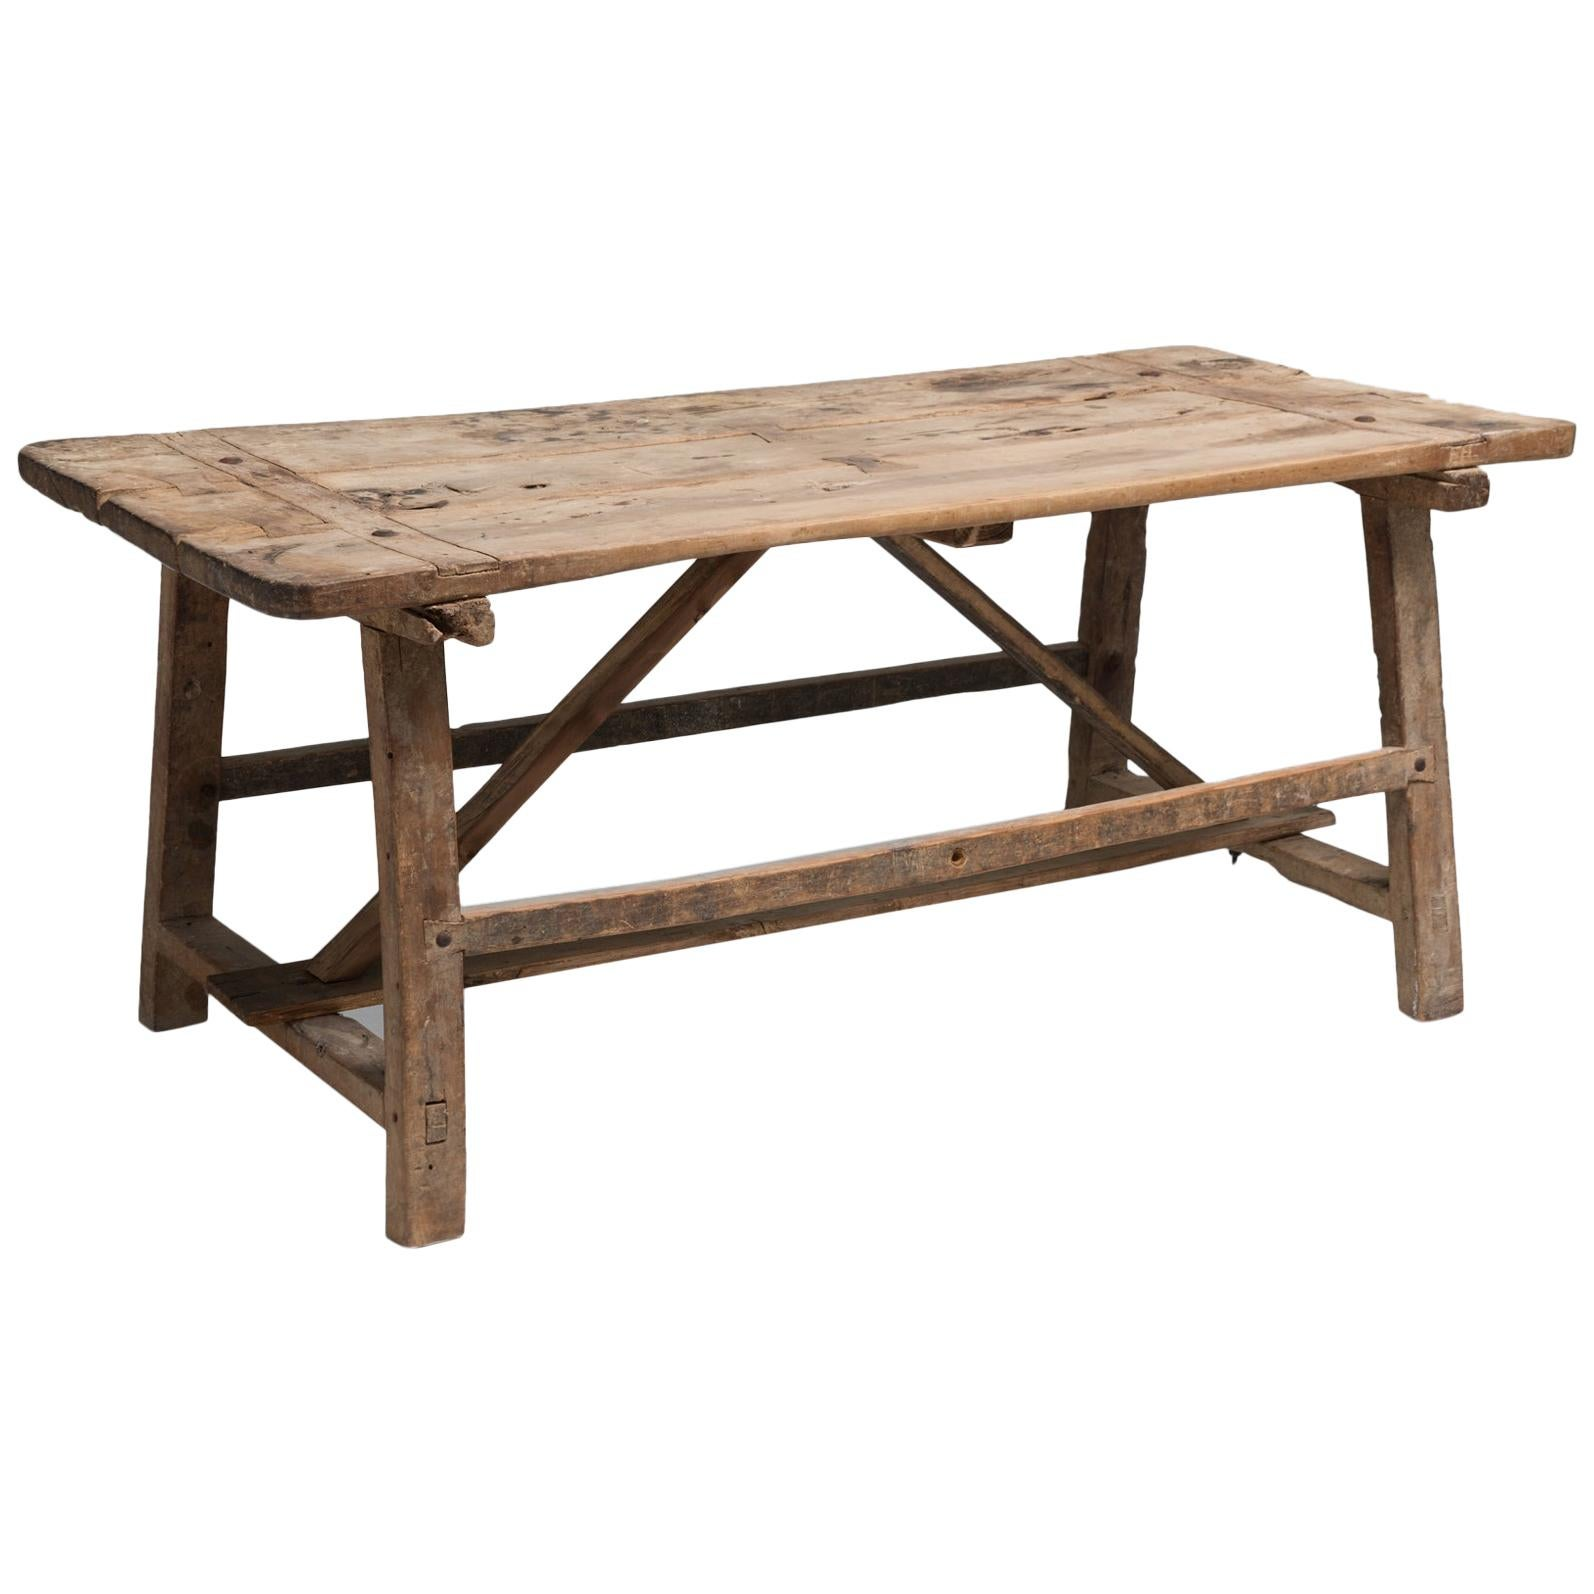 Primitive Work Table, Italy, 18th Century